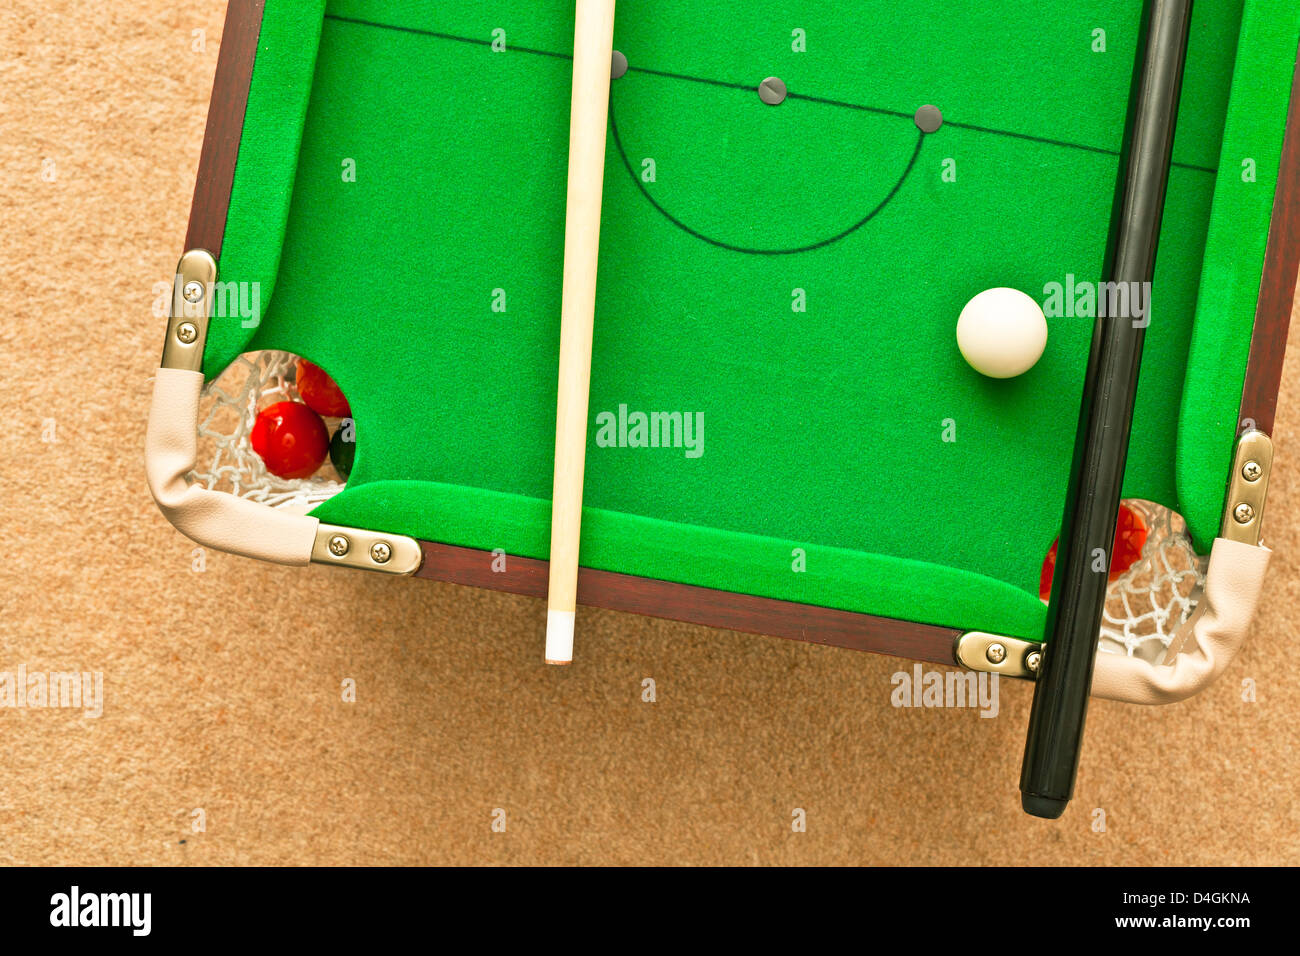 A small pool table on the floor - Stock Image